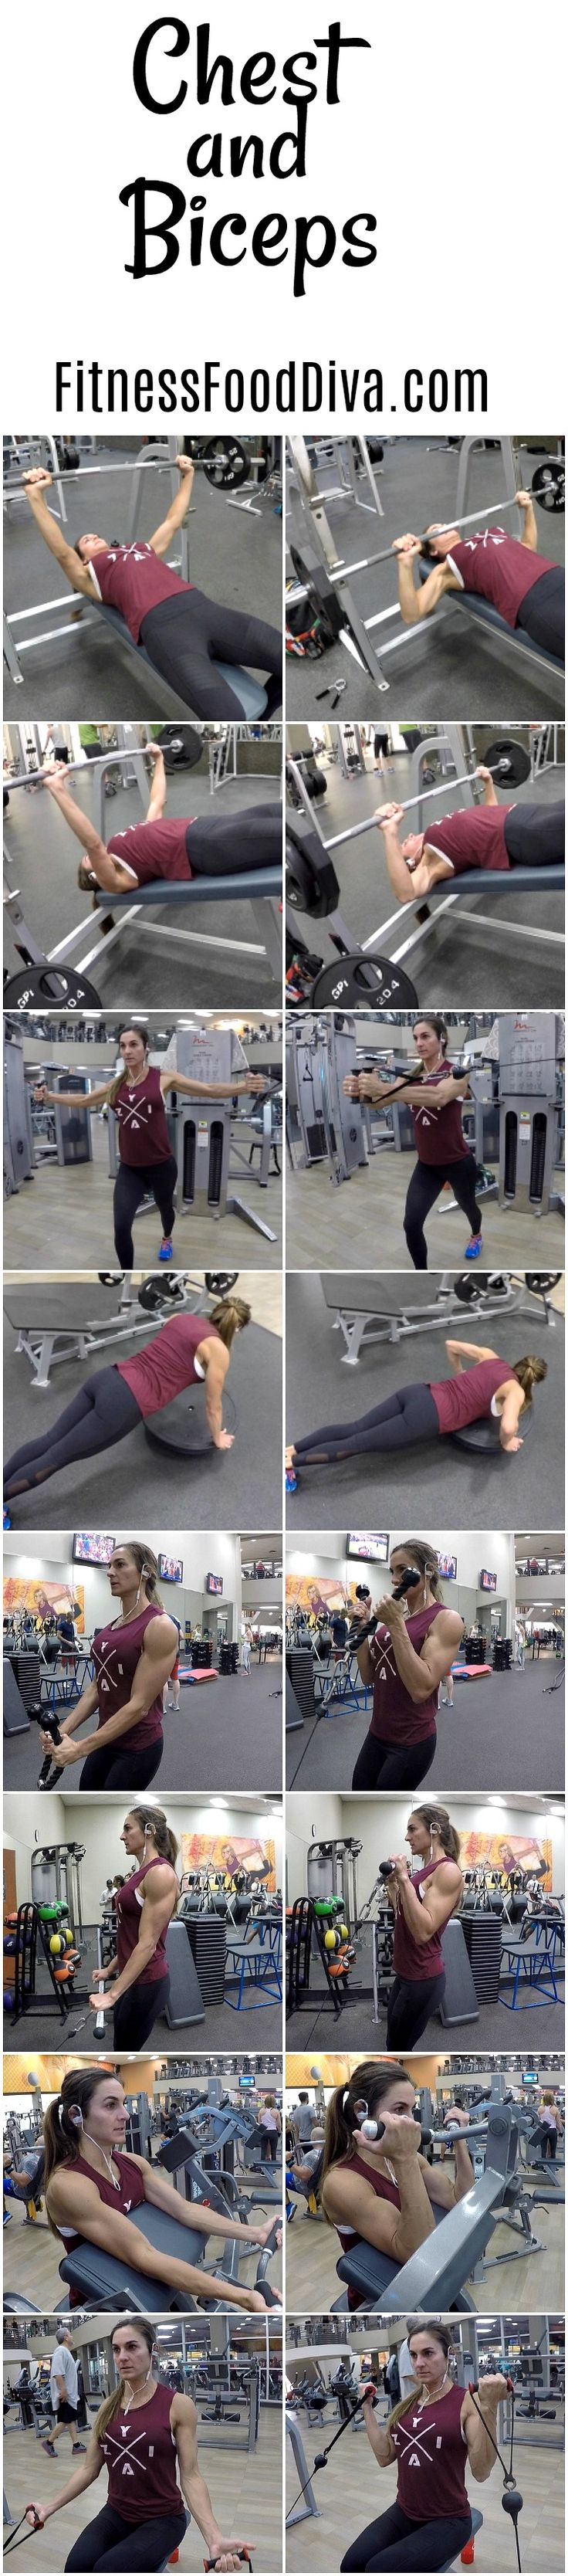 Chest and Biceps to build muscle and tone those upper bodies.